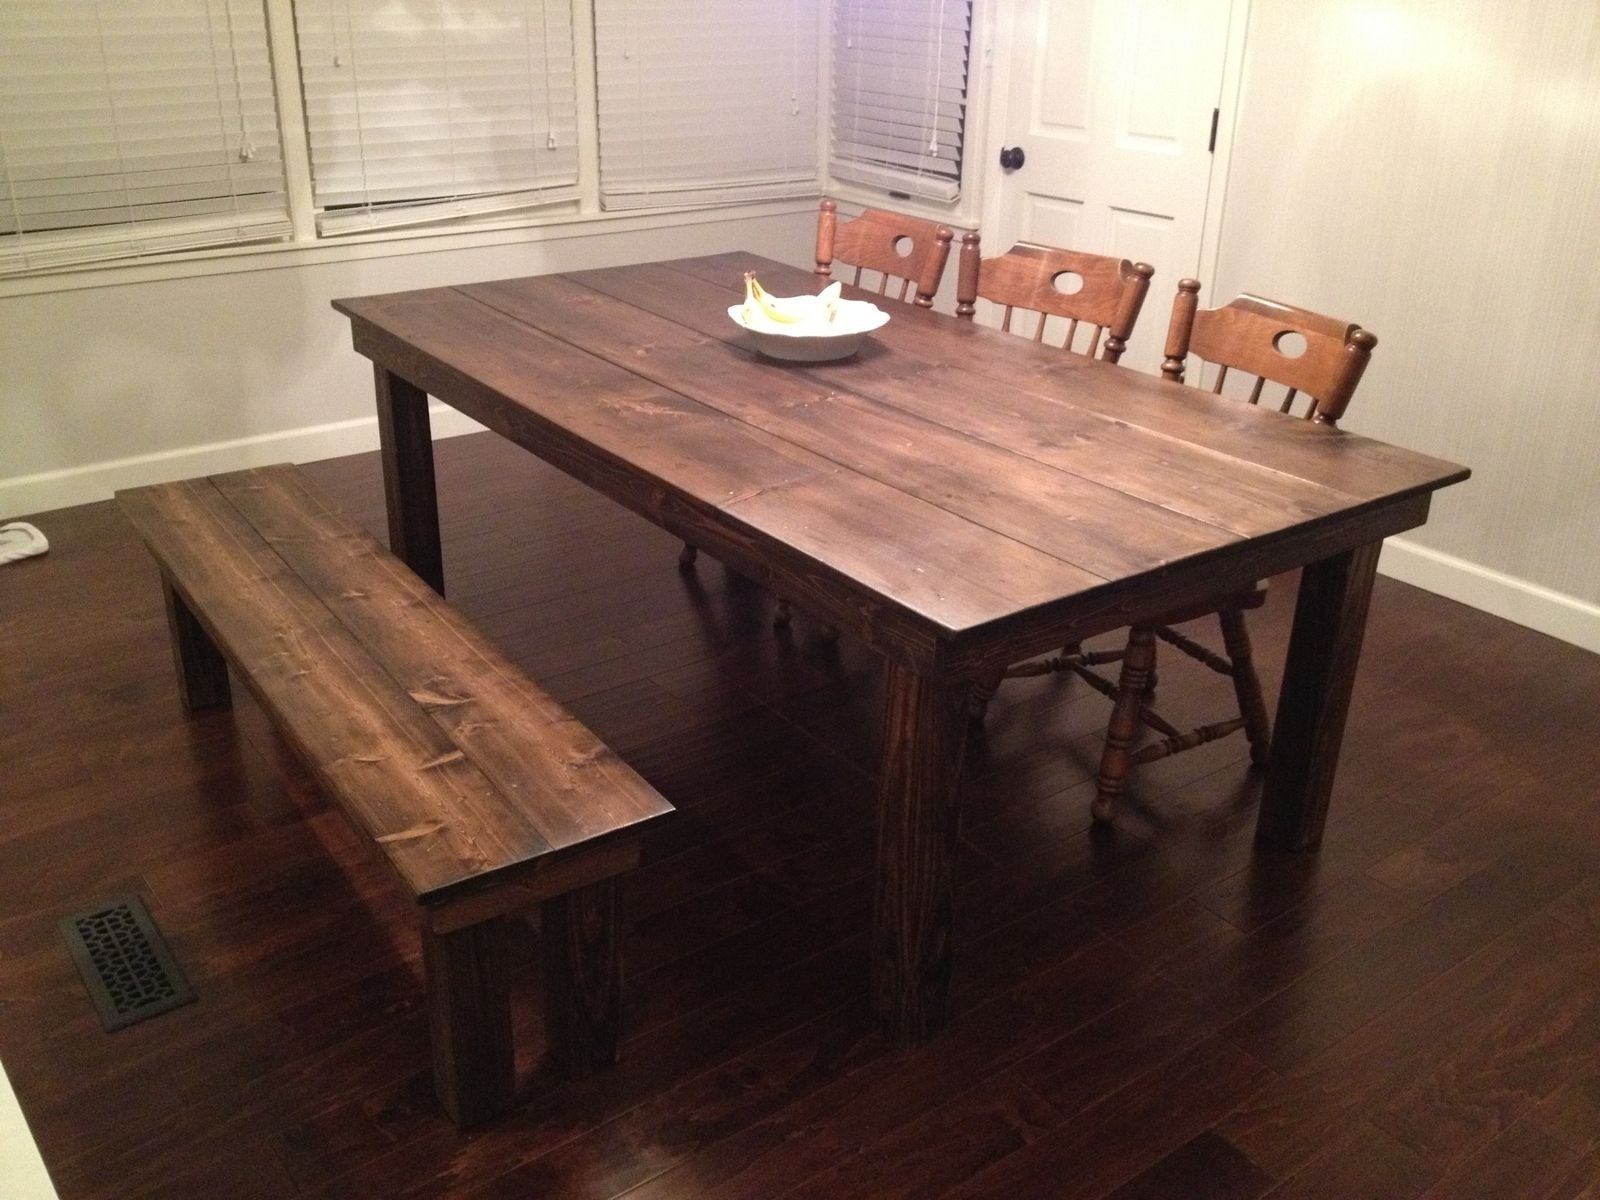 Custom Made Glass For Dining Table Best Of Cool Farm Dining Tables 4 Pertaining To Most Up To Date Farm Dining Tables (Photo 8 of 20)